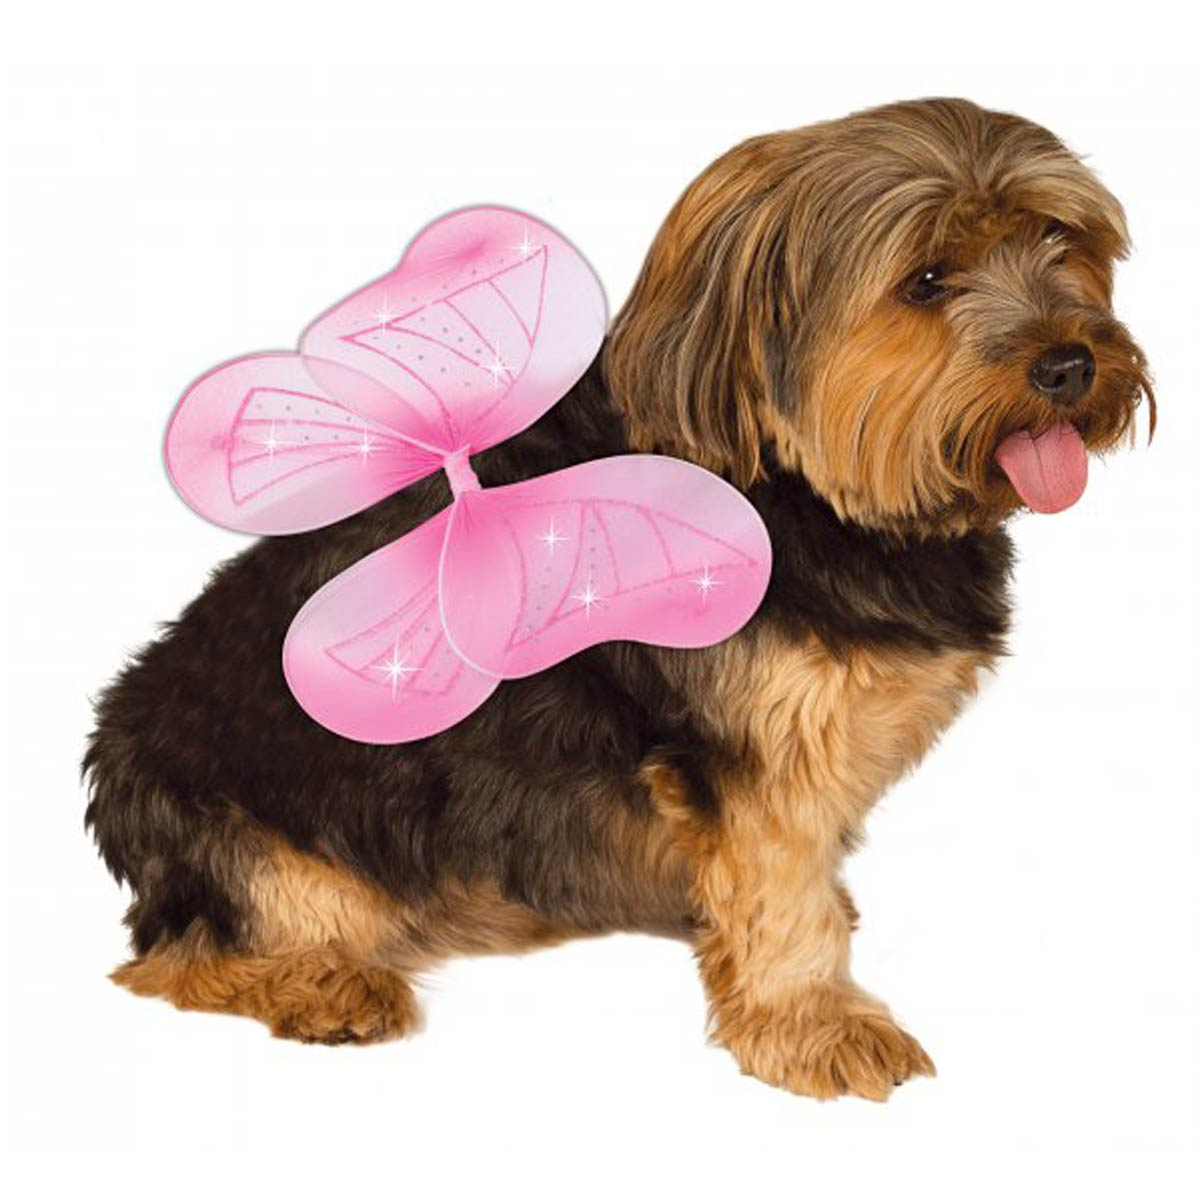 Fairy Wings Dog Costume - Pink  sc 1 st  BaxterBoo & Fairy Wings Dog Costume - Pink with Same Day Shipping | BaxterBoo